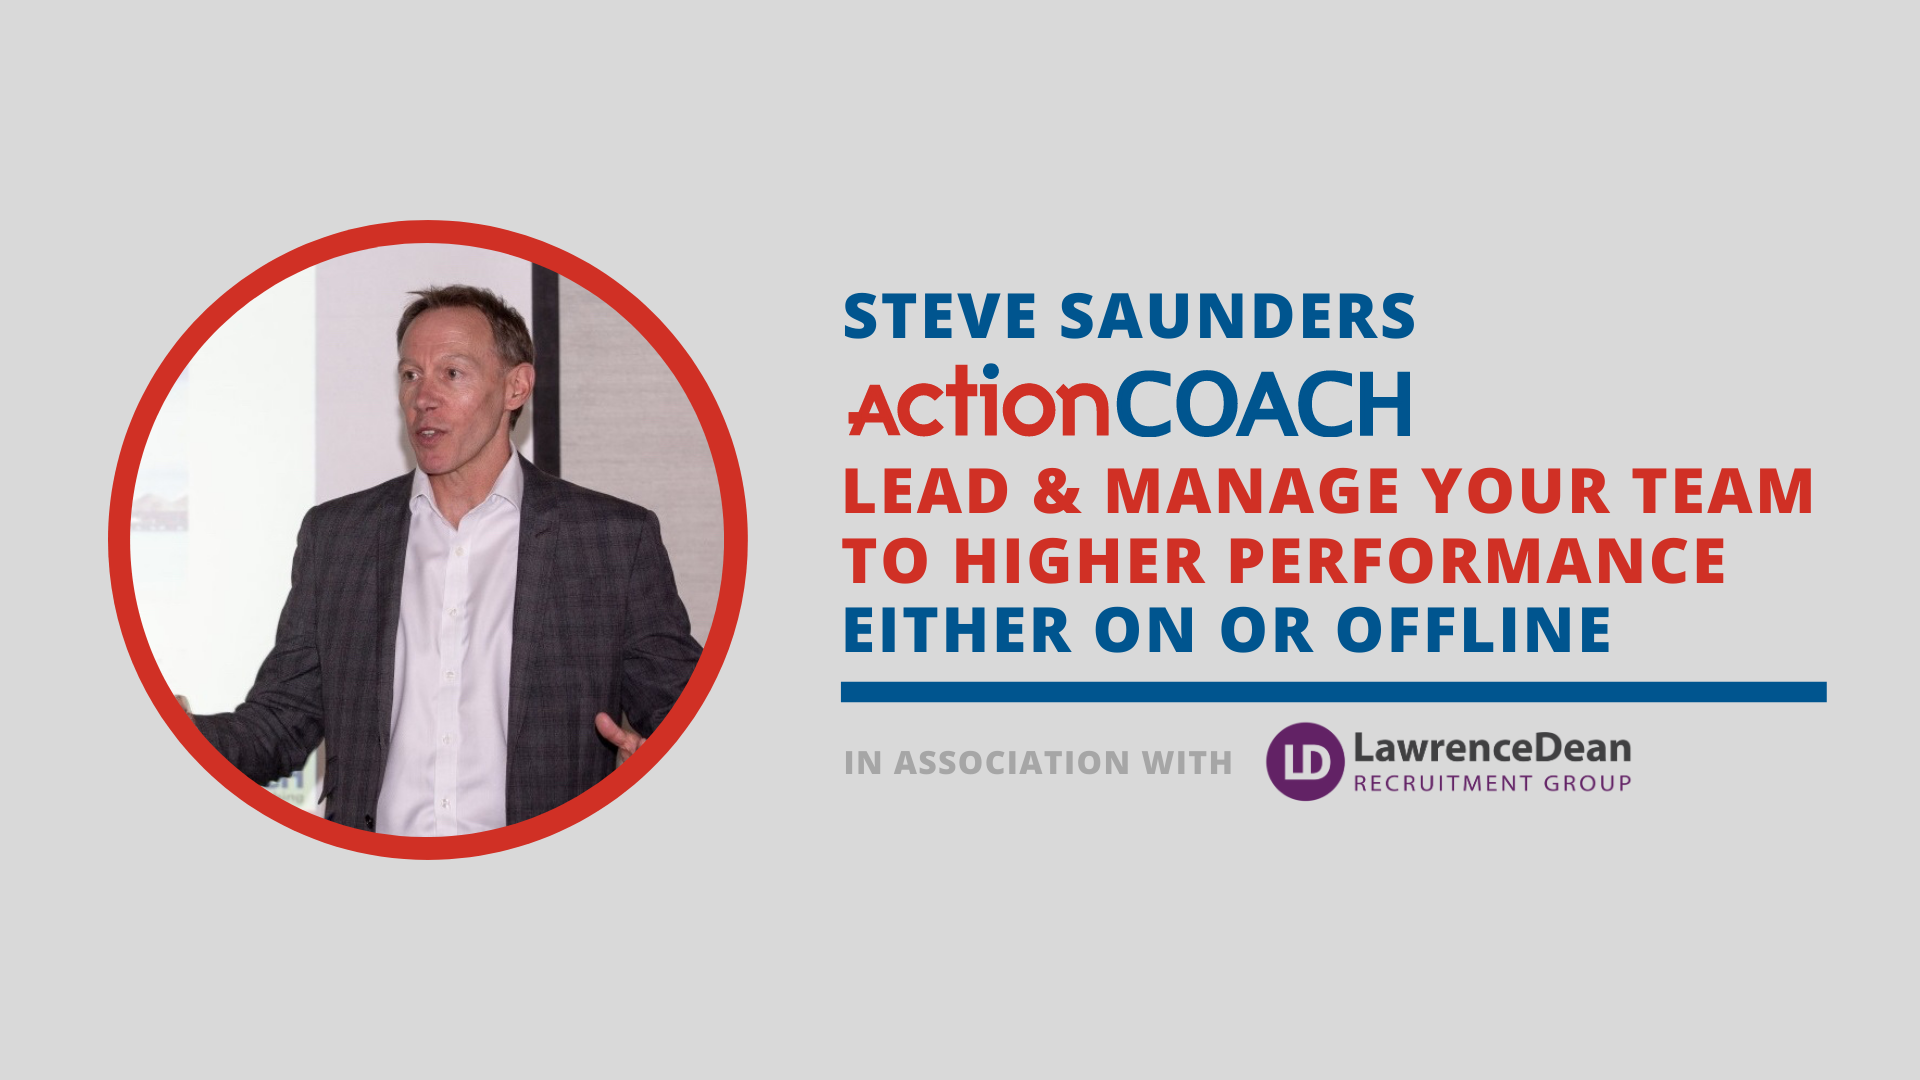 Steve Saunders Action Coach